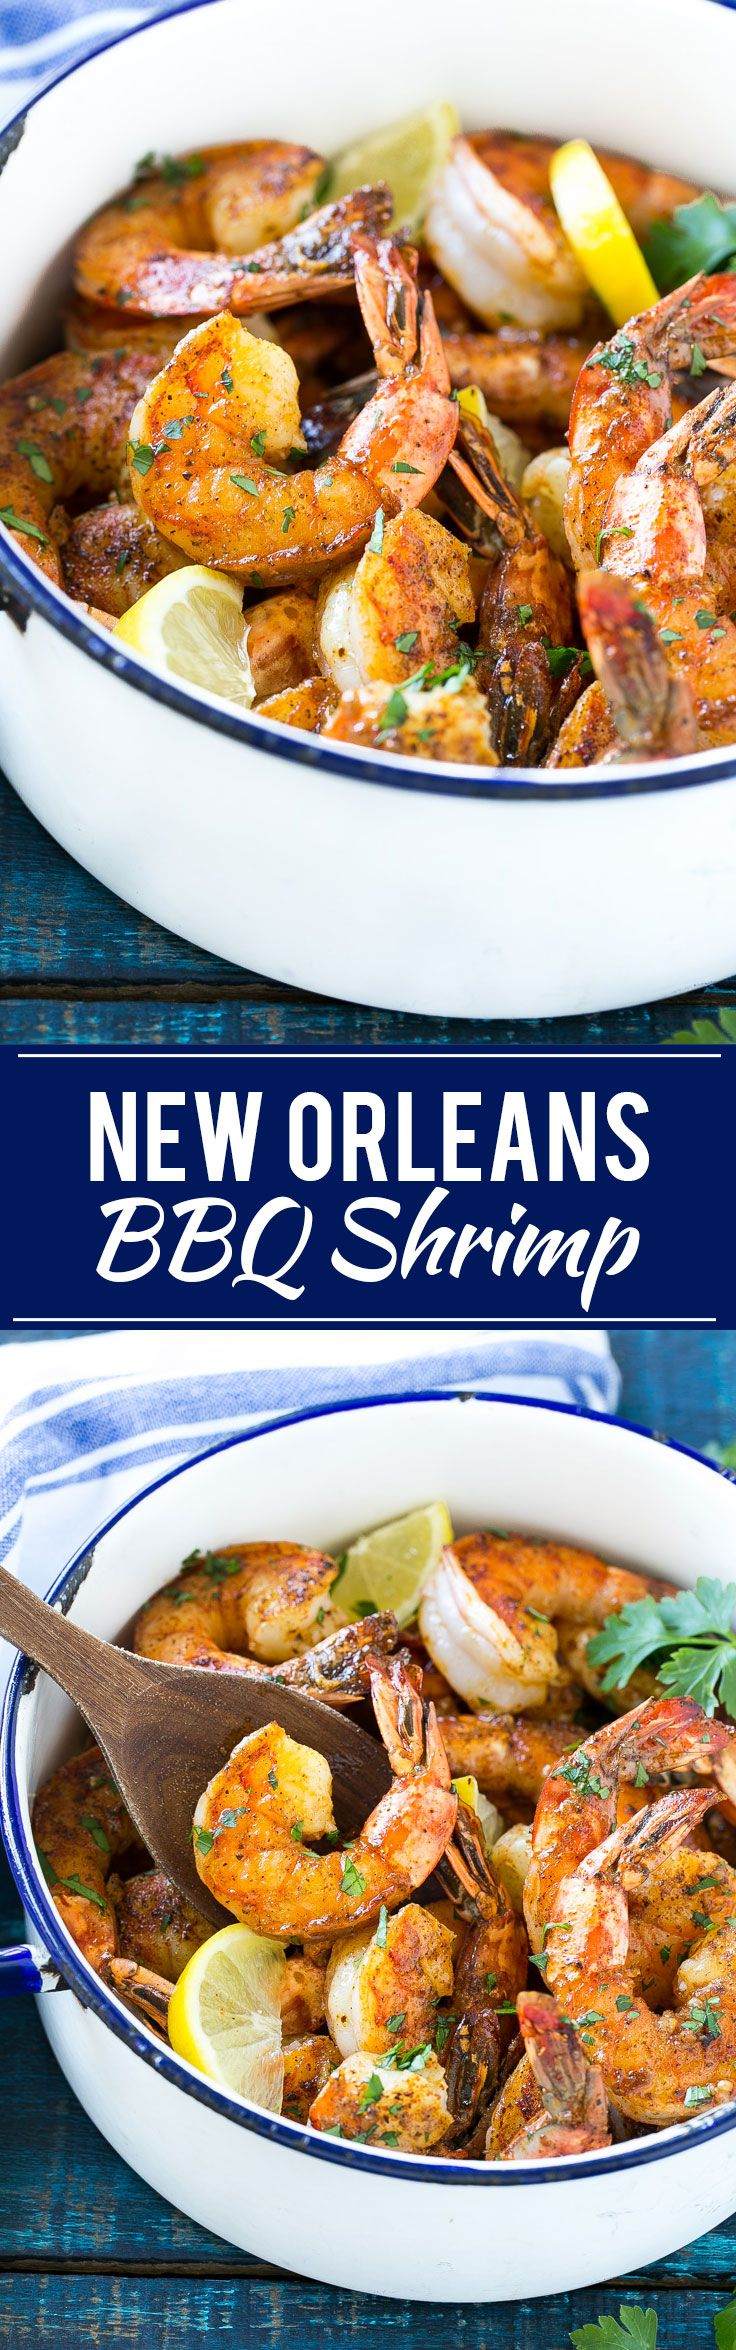 New Orleans BBQ Shrimp - Tender and succulent shrimp cooked in a bold and zesty sauce - full of flavor and easy to make!